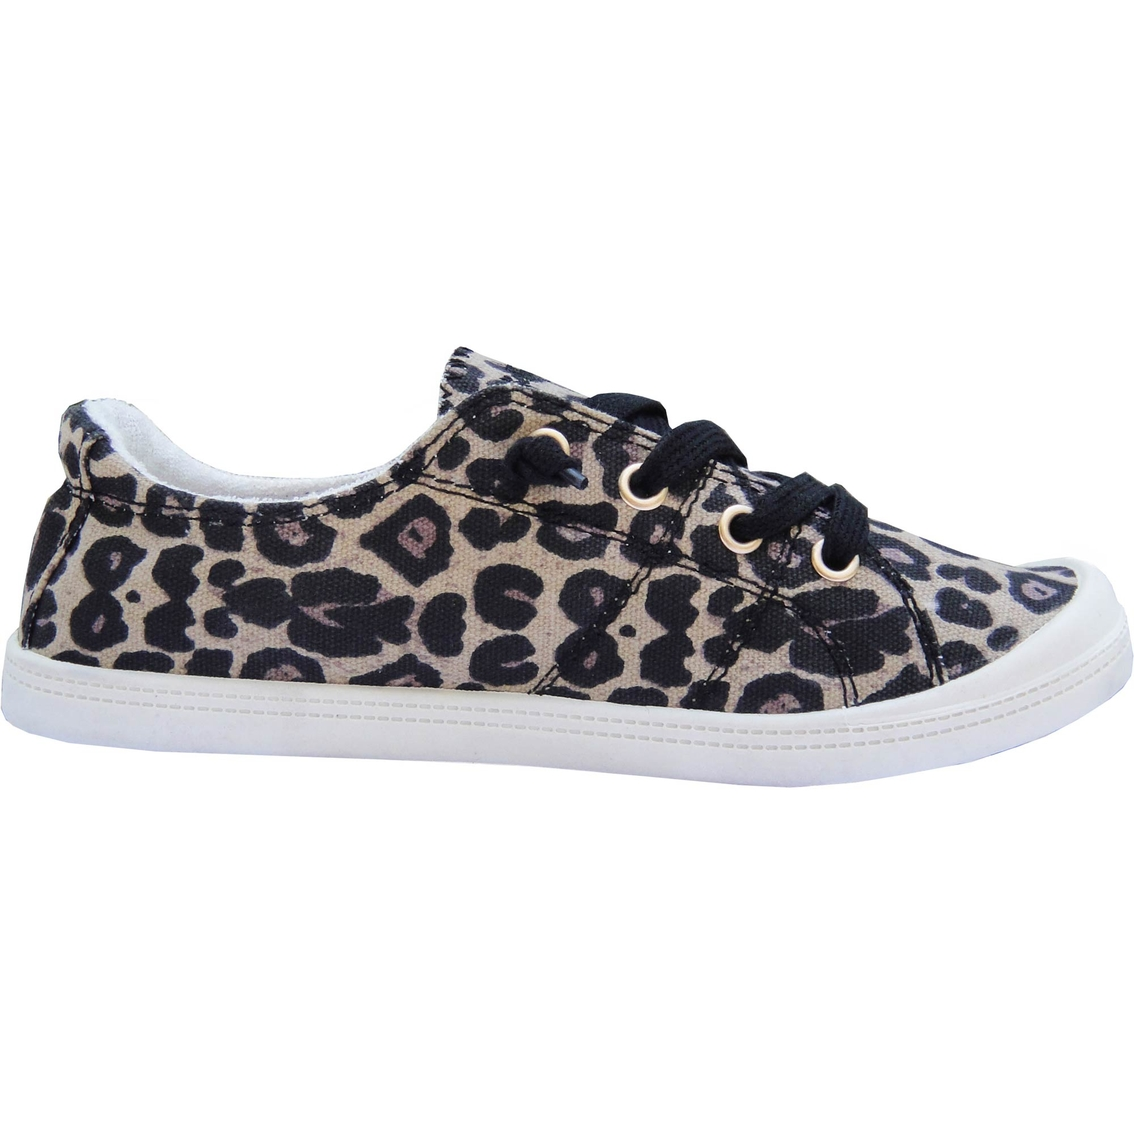 Dallas Sneakers | Sneakers | Shoes